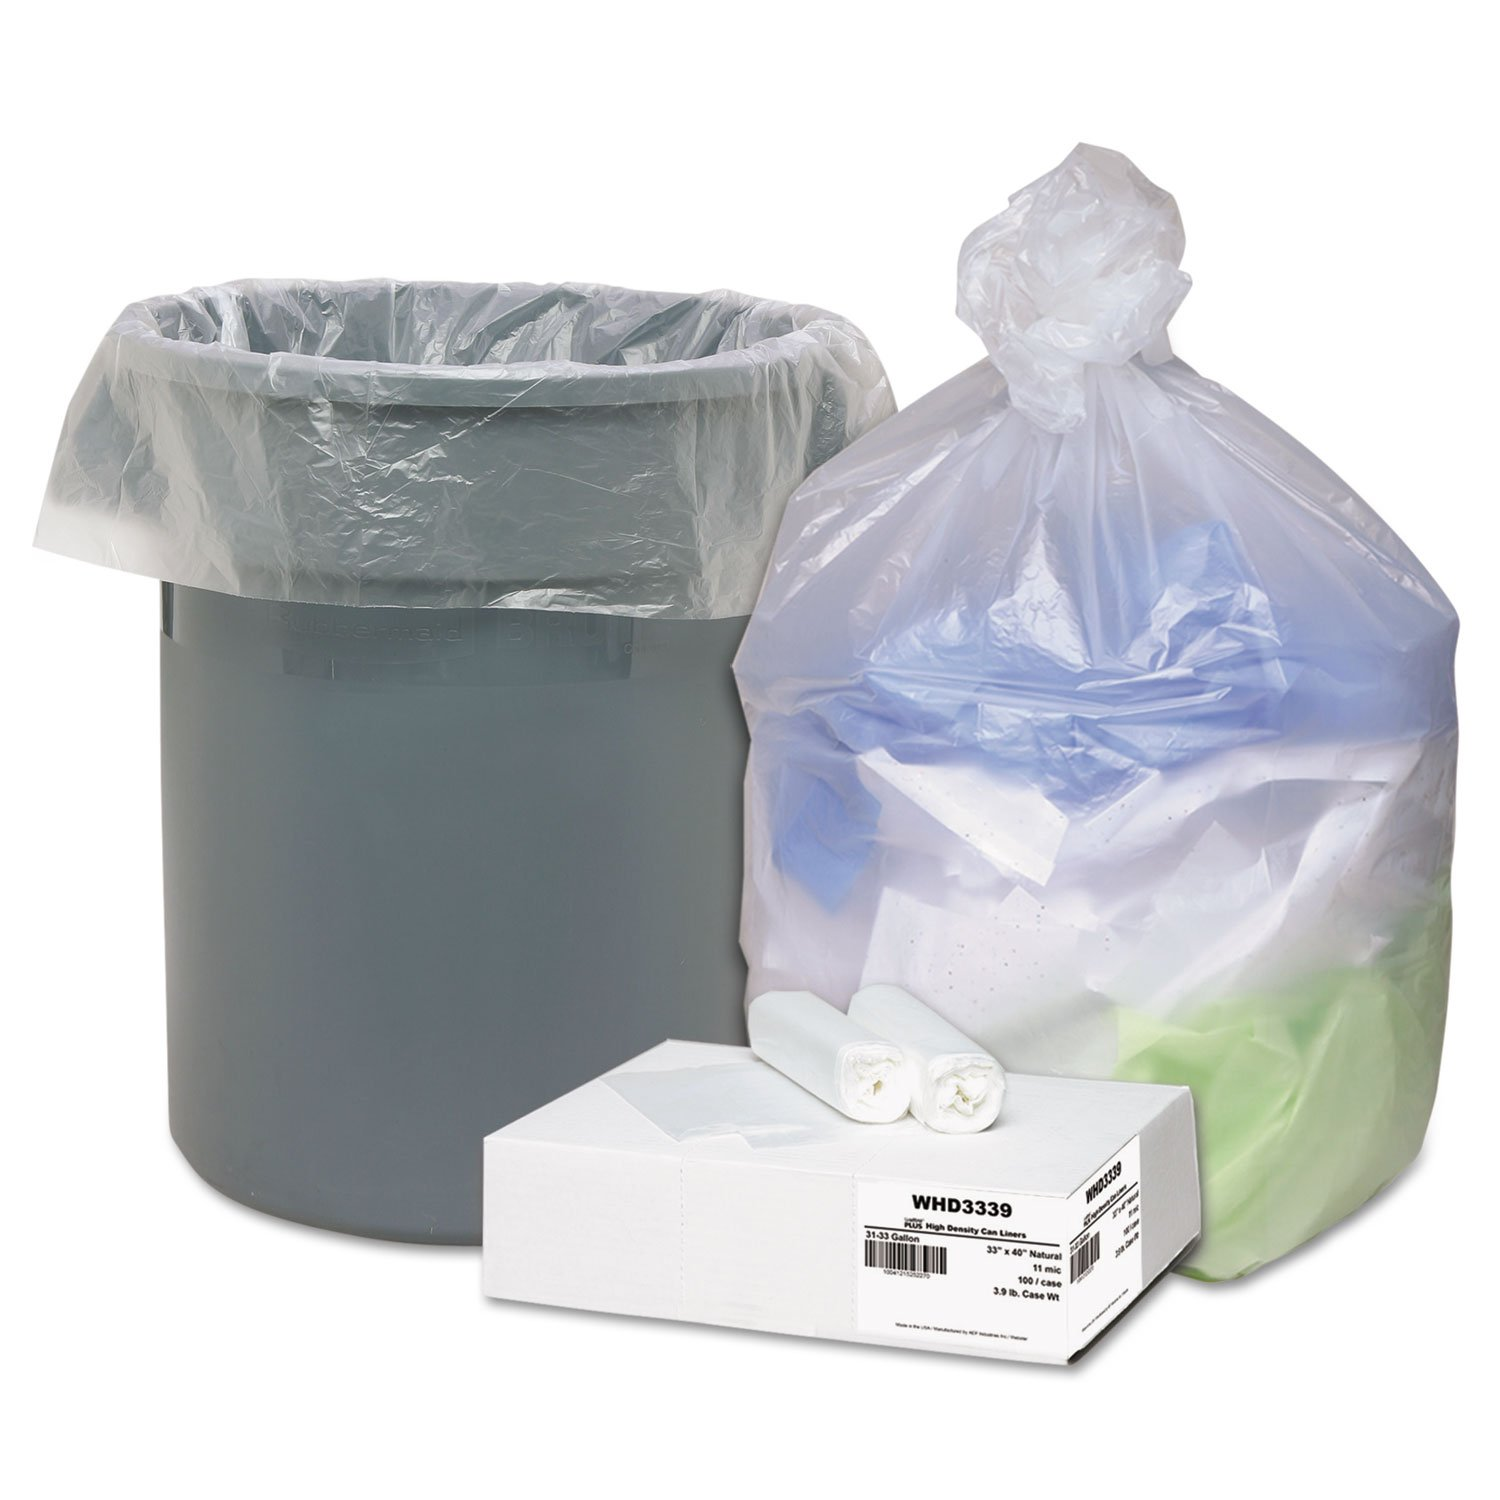 WBIWHD3339 - Webster Ultra Plus High Density Trash Can Liner